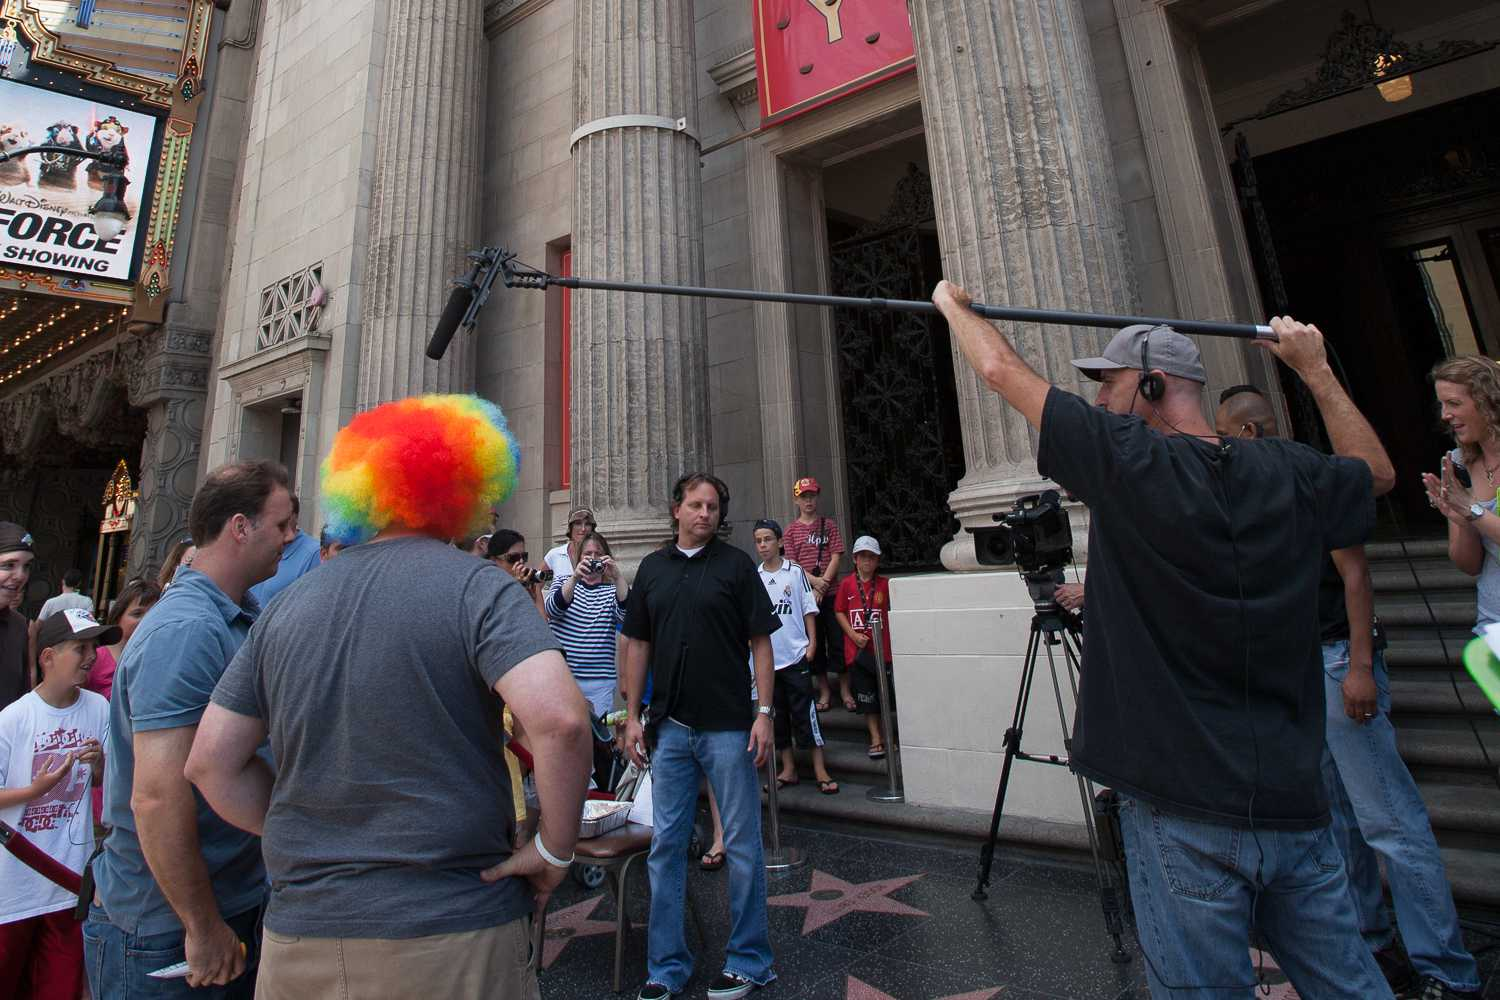 Cousin Sal taping a bit for the Jimmy Kimmel Live! show in front of the Disney Entertainment Center on Hollywood Blvd